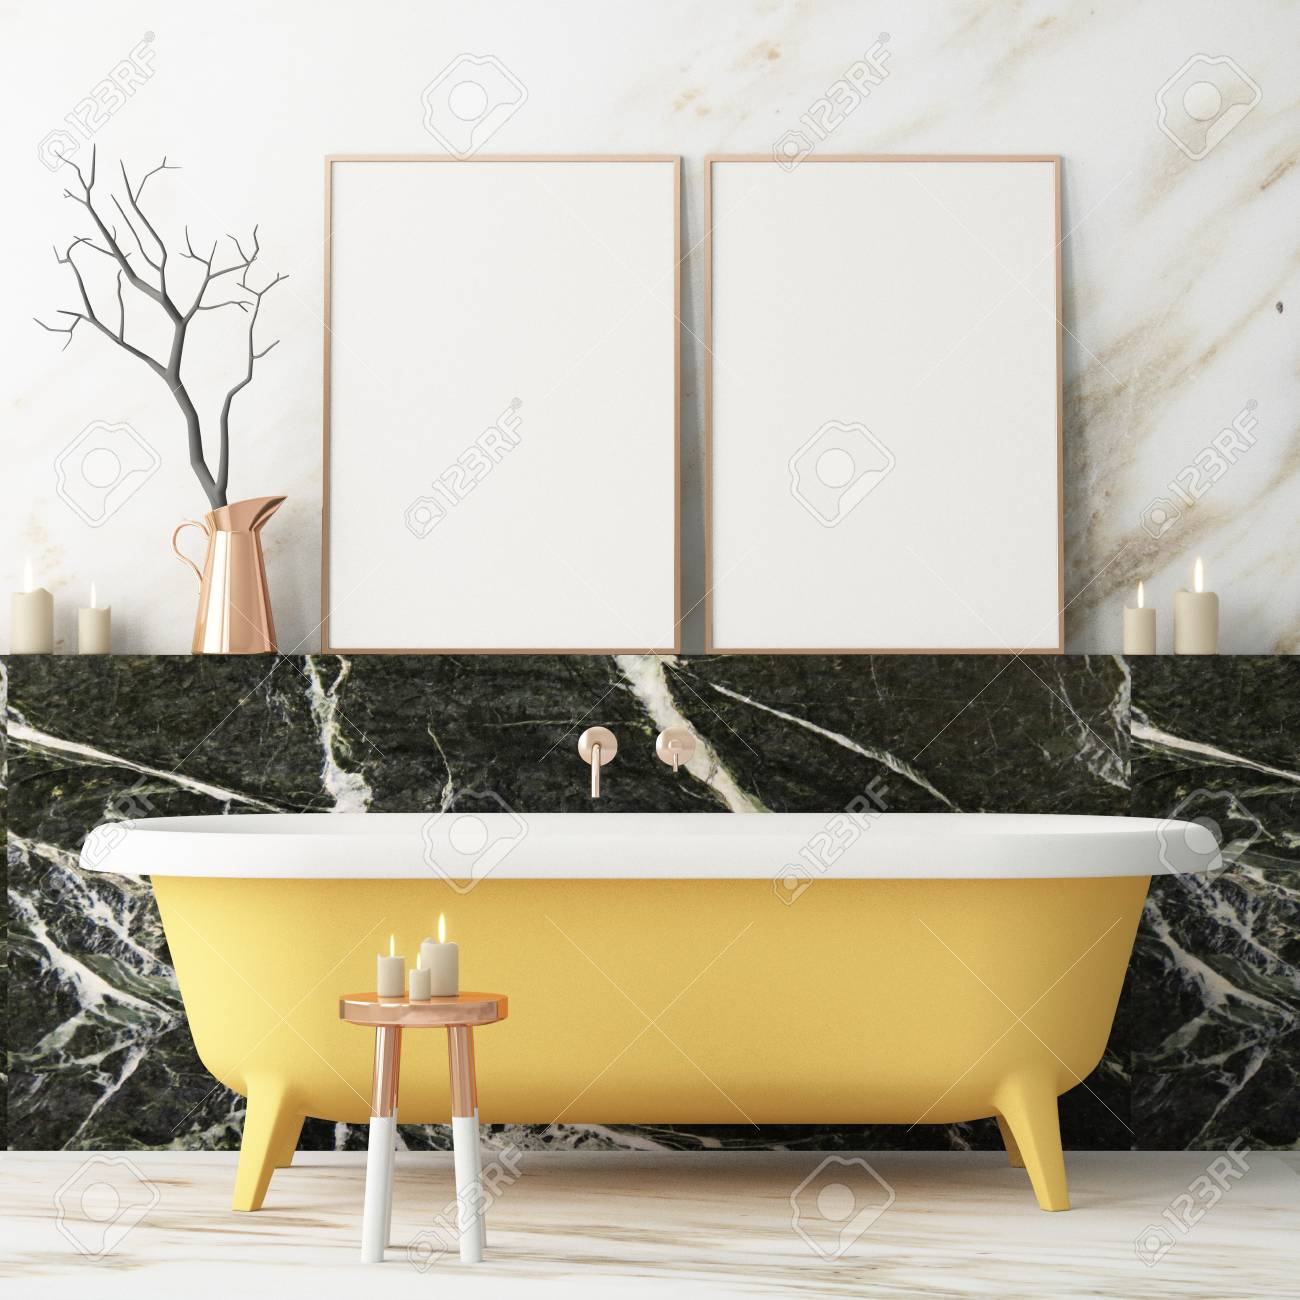 The Interior Of The Bathroom Is In Art Deco Style 3d Illustration Stock Photo Picture And Royalty Free Image Image 103324290